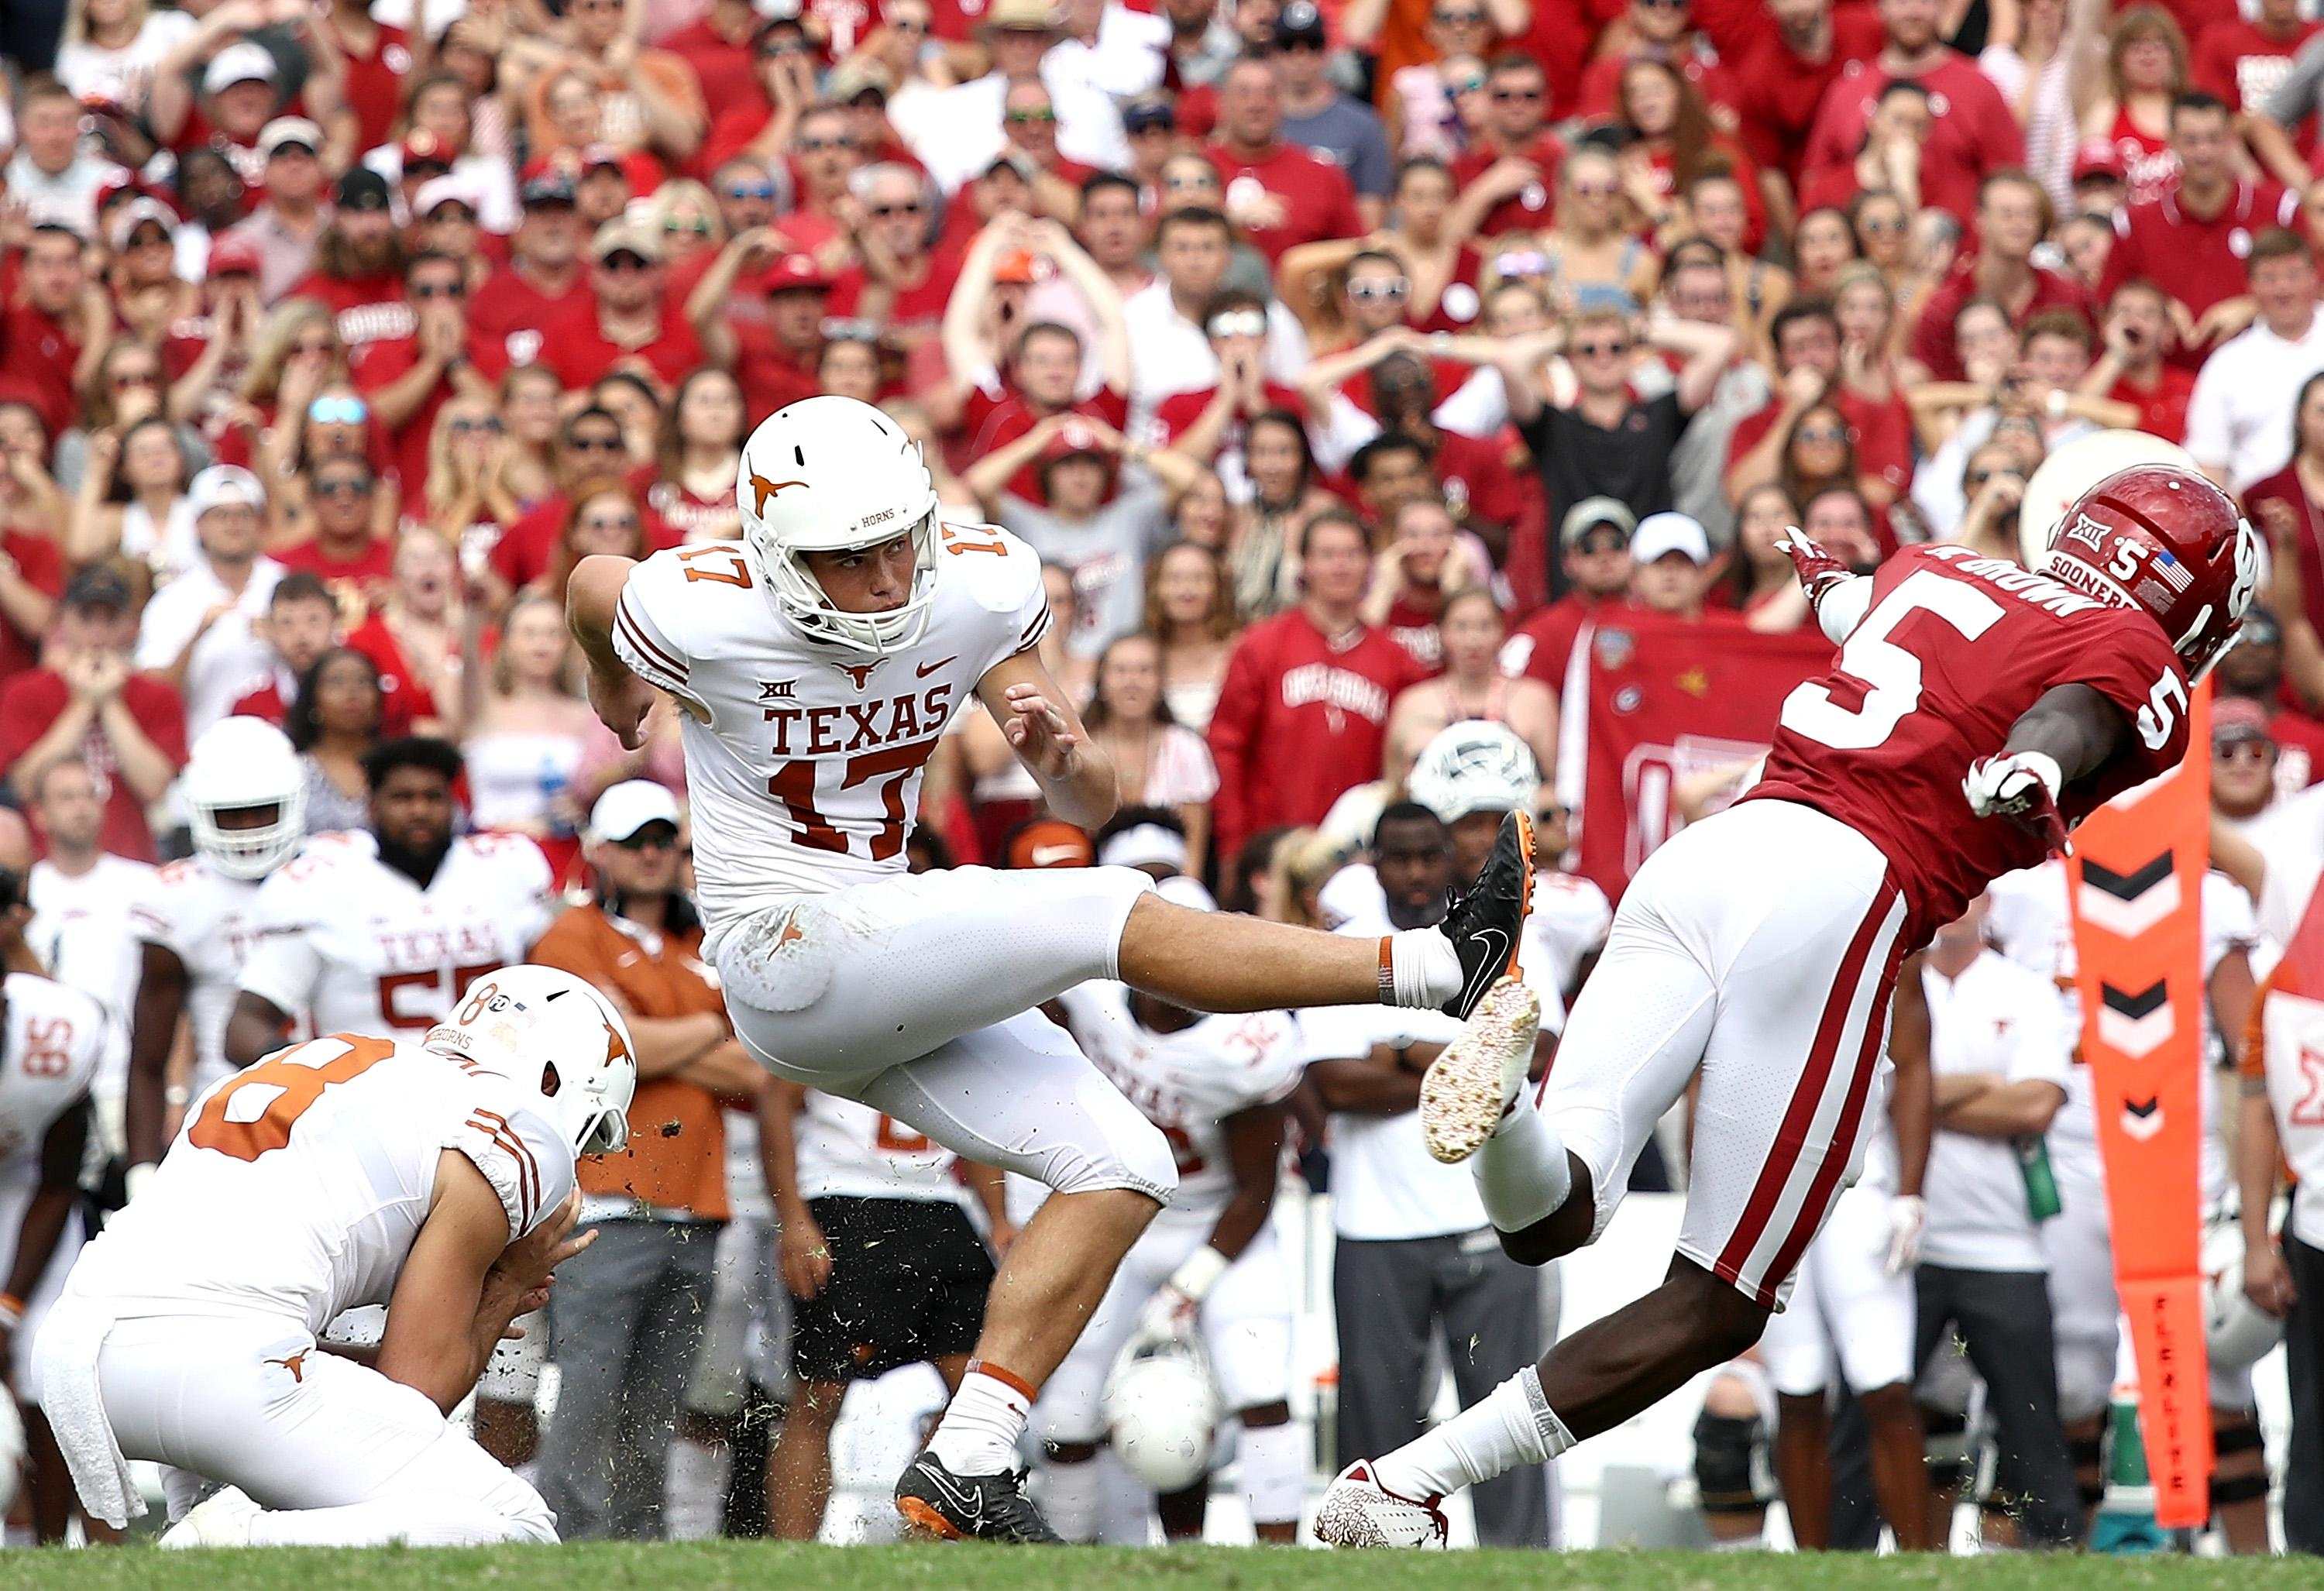 DALLAS, TX - OCTOBER 06:  Cameron Dicker #17 of the Texas Longhorns kicks the game winning field goal against the Oklahoma Sooners in the 2018 AT&T Red River Showdown at Cotton Bowl on October 6, 2018 in Dallas, Texas.  (Photo by Ronald Martinez/Getty Images)